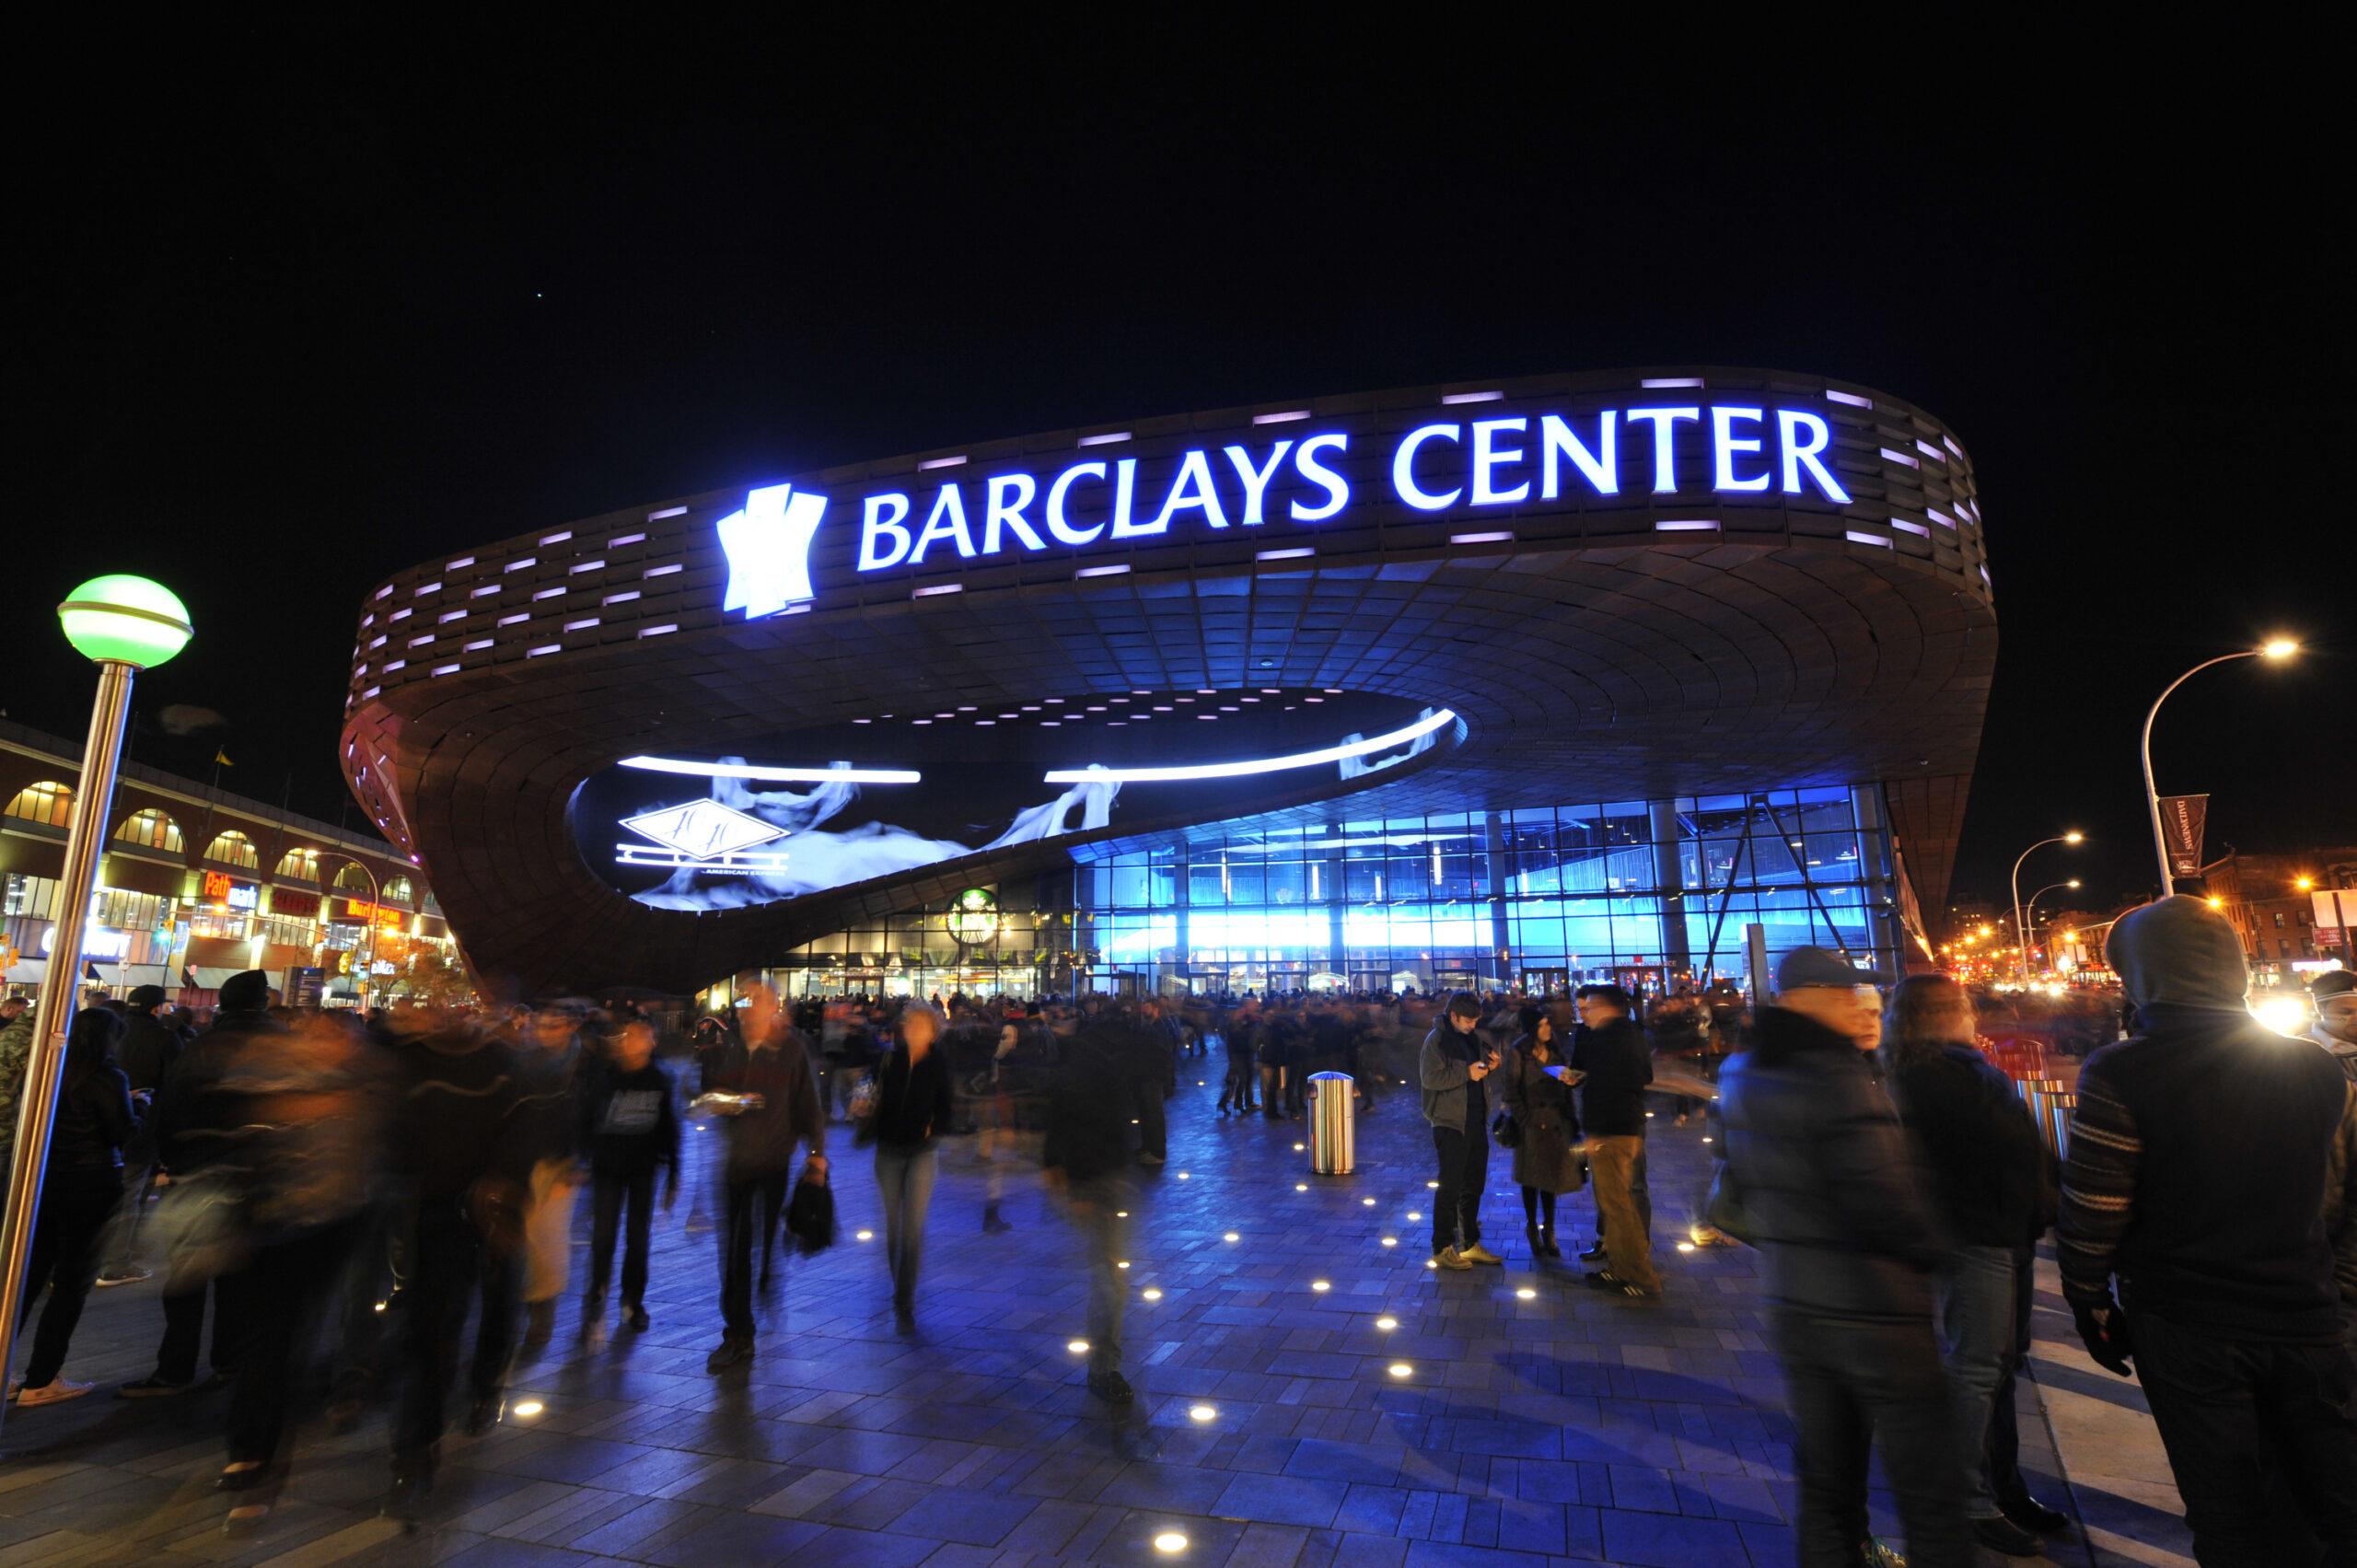 NBA Draft 2021 to be held at Barclays Center on July 29